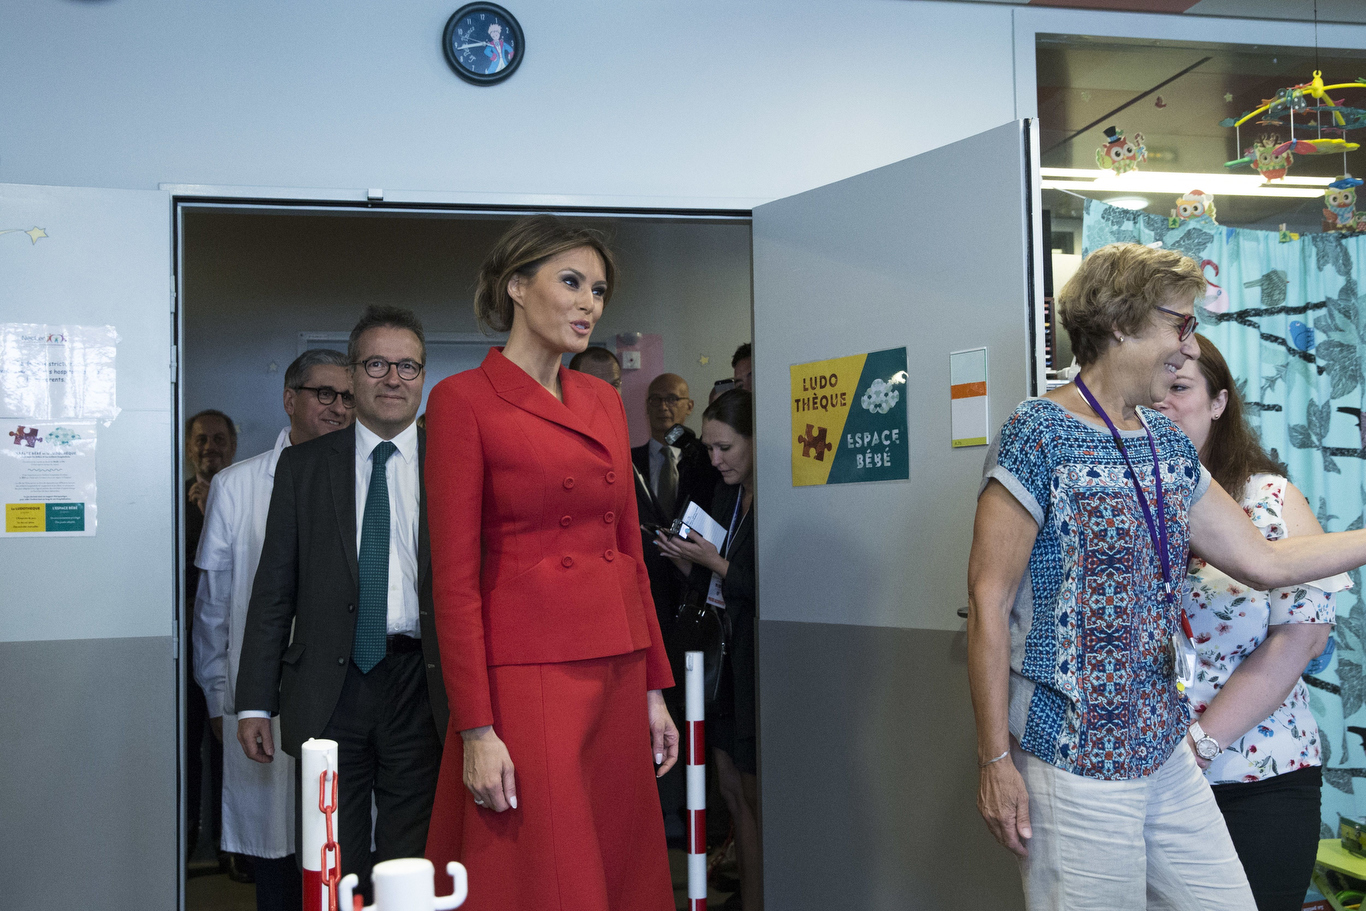 First Lady Melania Trump, center, visits the Necker hospital, France's biggest pediatric hospital in Paris, . Melania Trump is touring the hospital shortly after her arrival in France with President Donald Trump aboard Air Force OneTrump, Paris, France - 13 Jul 2017